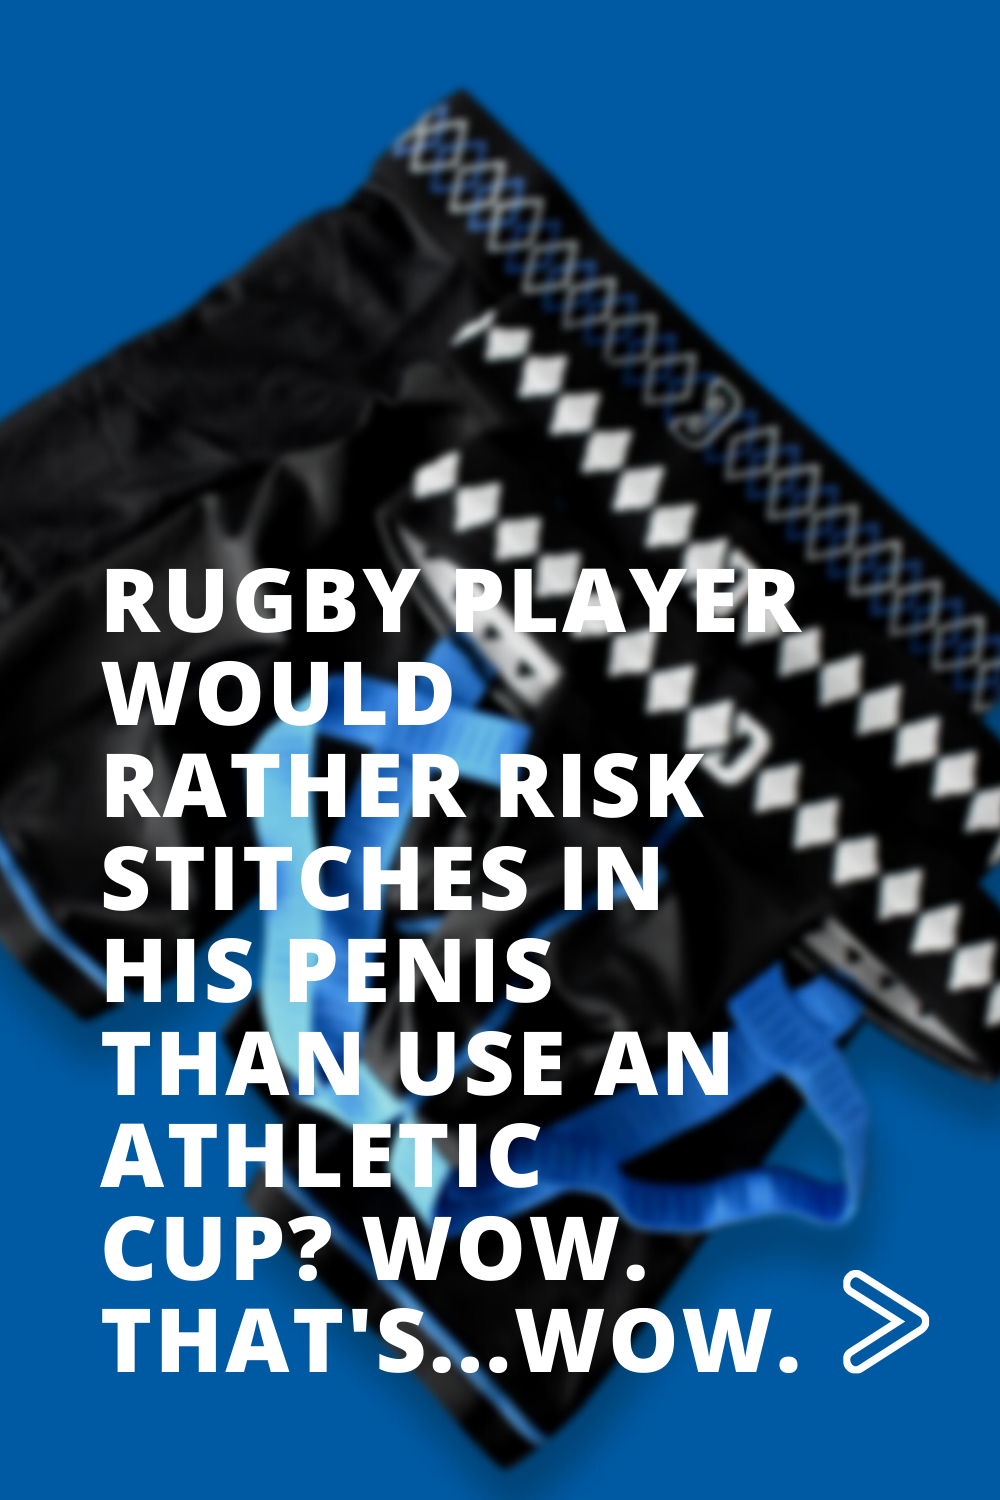 Rugby Player Would Rather Risk Stitches in his Penis than Use an Athletic Cup? Wow. That's. Wow.